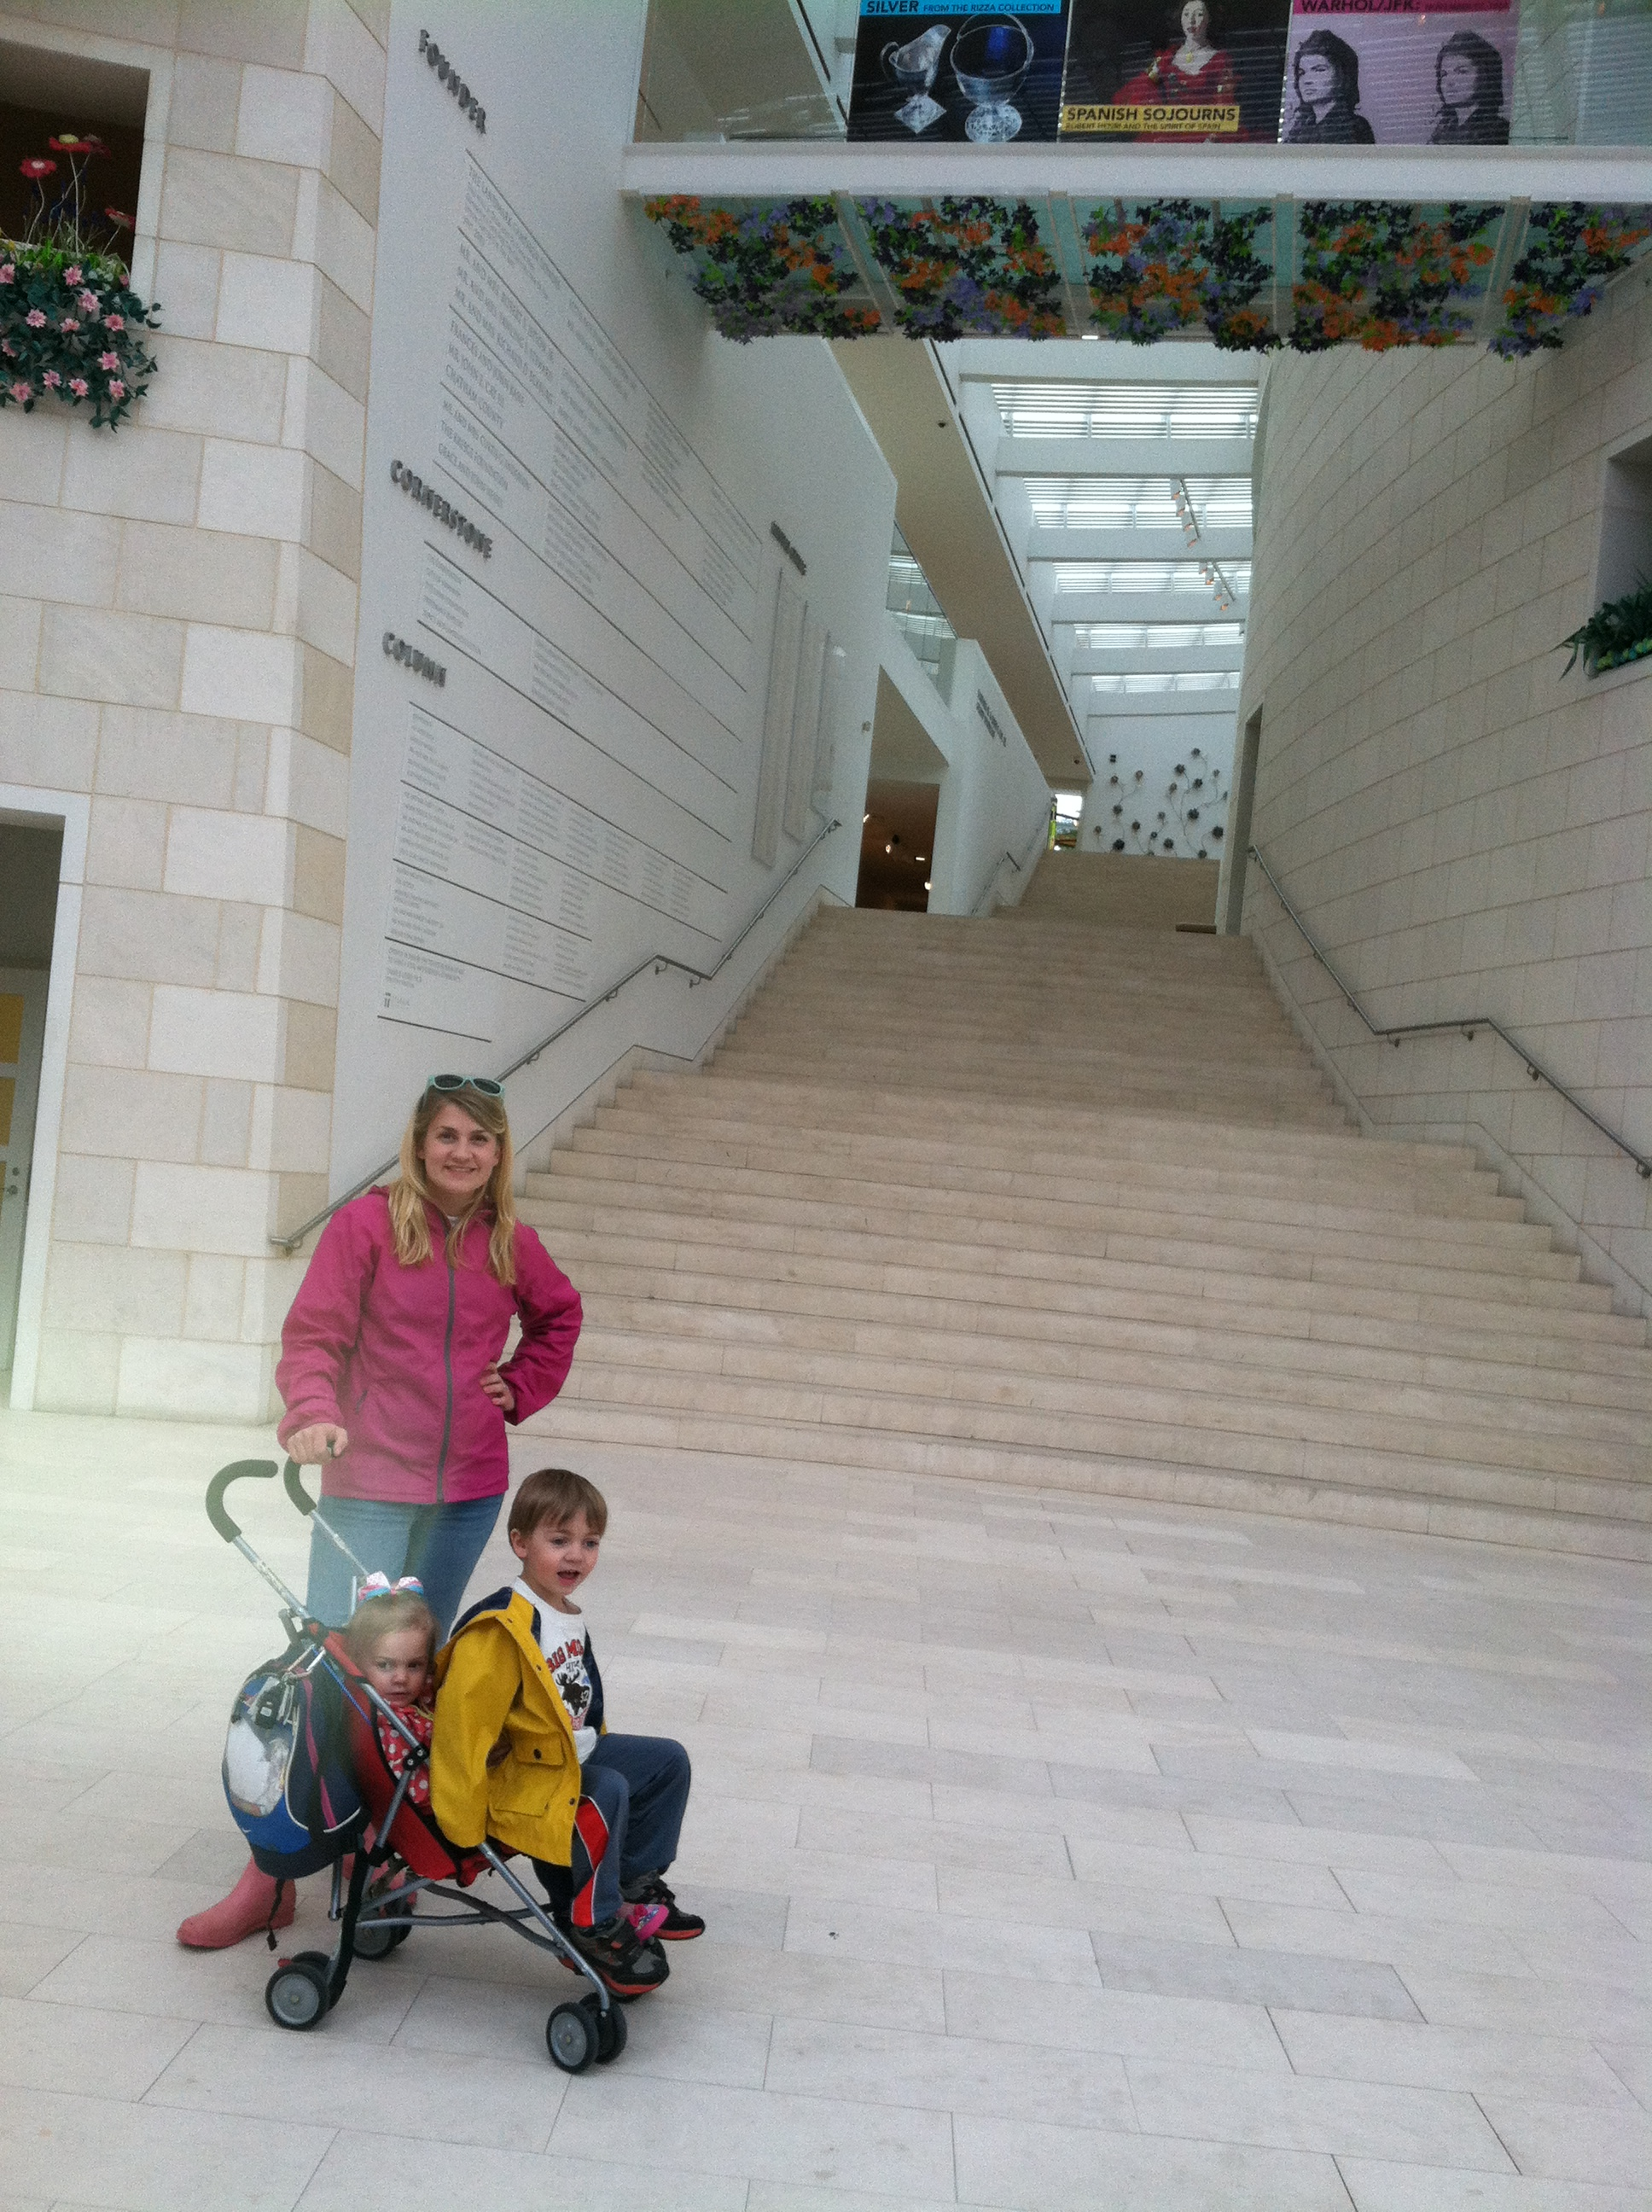 My sis & her youngest two kids at the Jepsen Center Art Museum in Savannah, GA